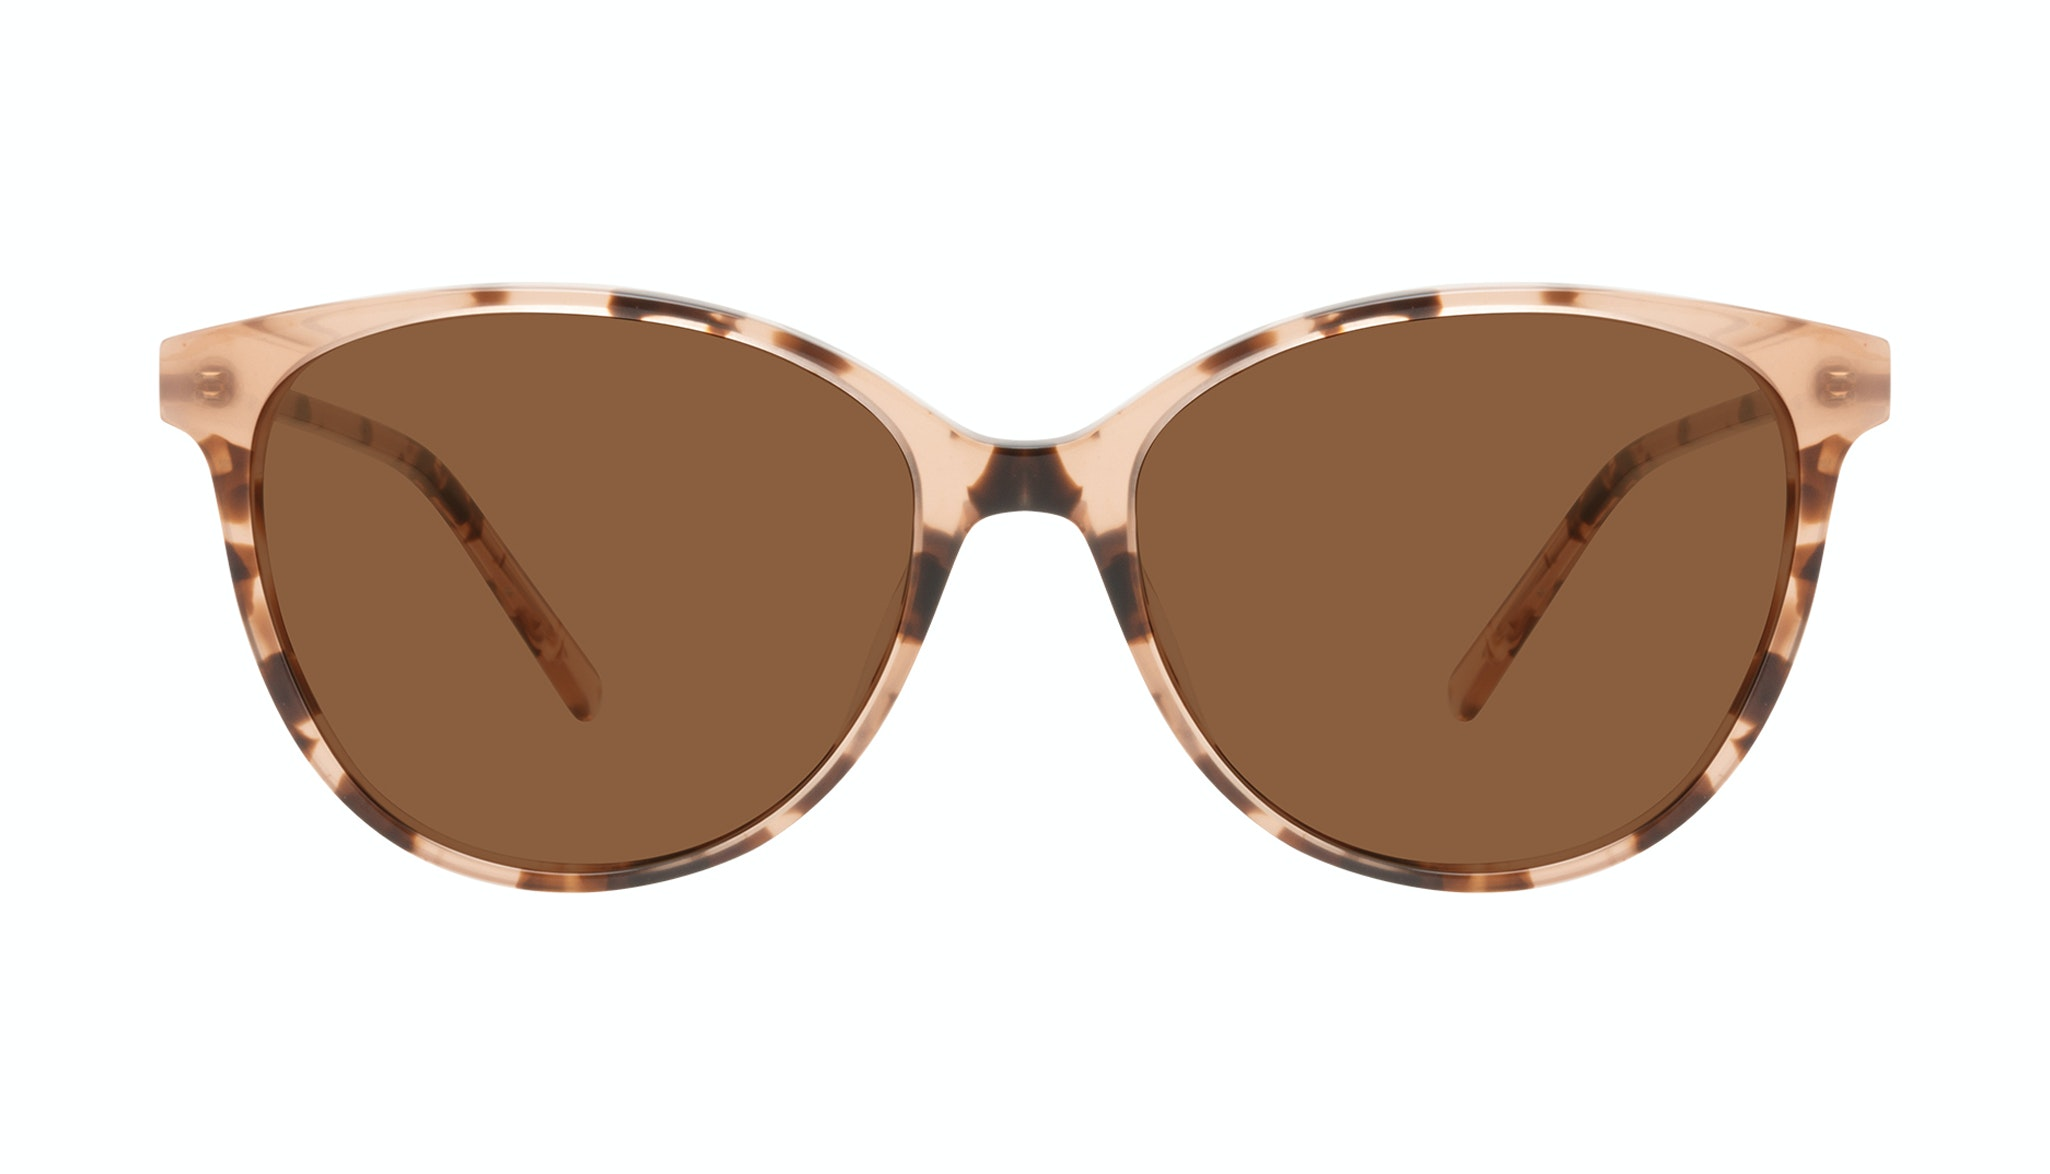 Affordable Fashion Glasses Round Sunglasses Women Imagine II Plus Tortie Front